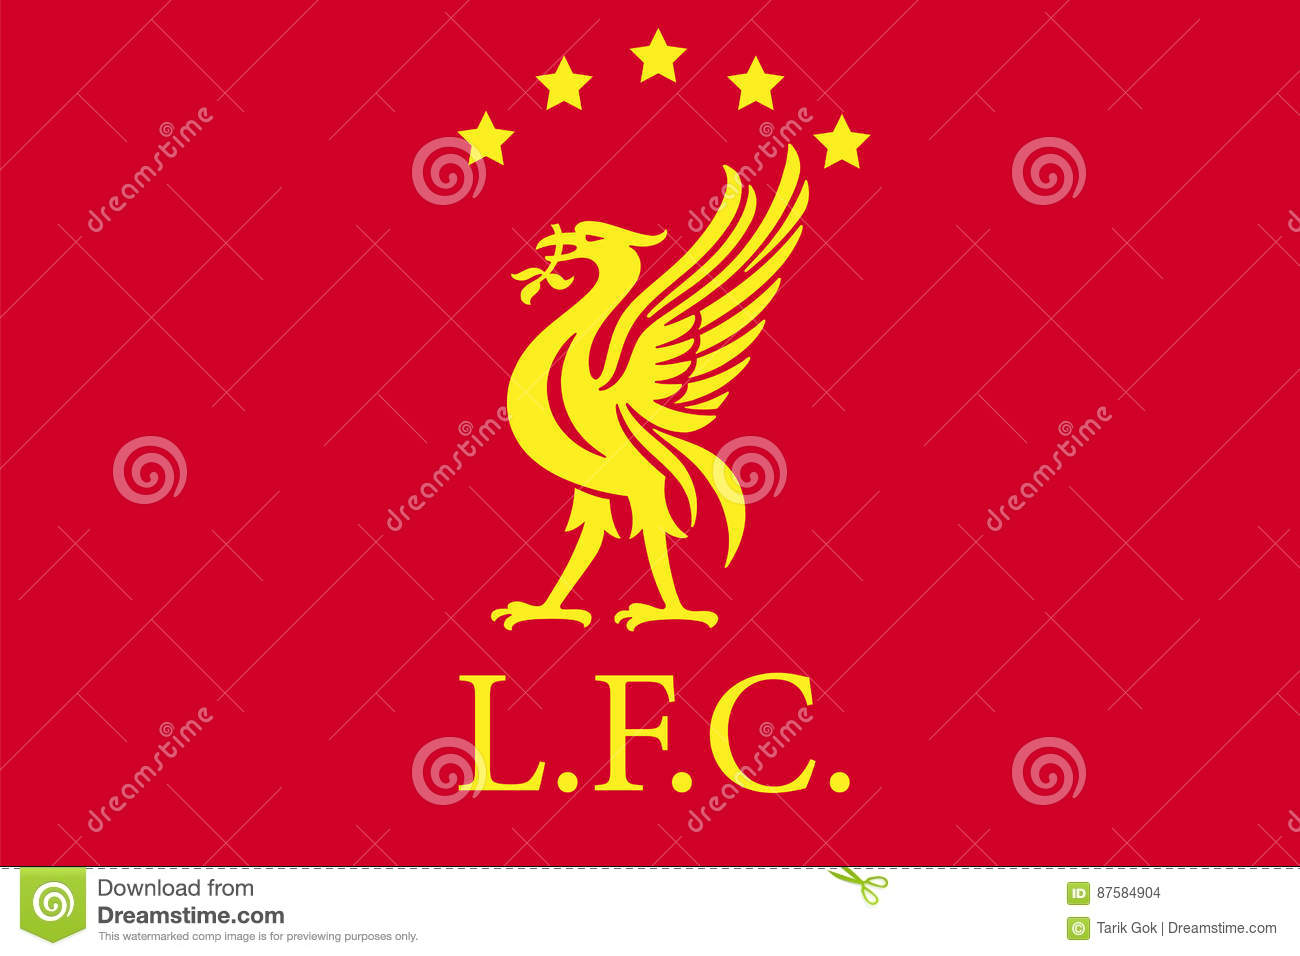 Liverpool F.C. Editorial Stock Image. Illustration Of